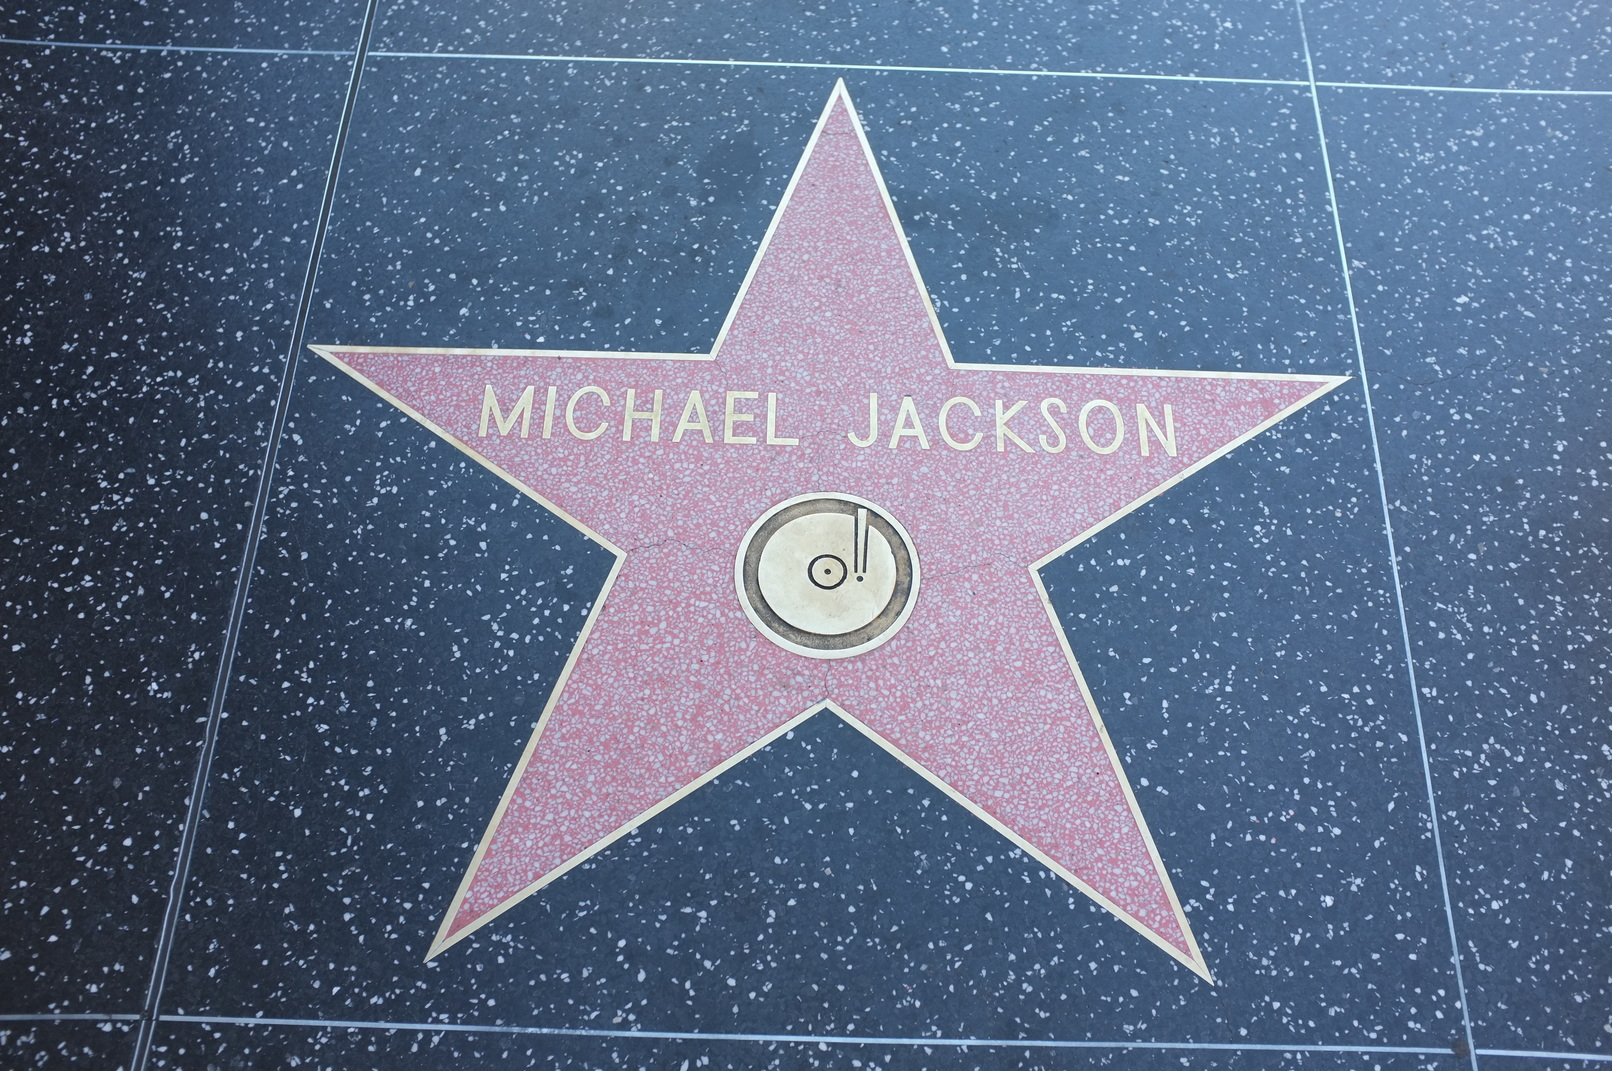 Lawsuit Claims Three Michael Jackson Songs on Posthumous Album are Fake